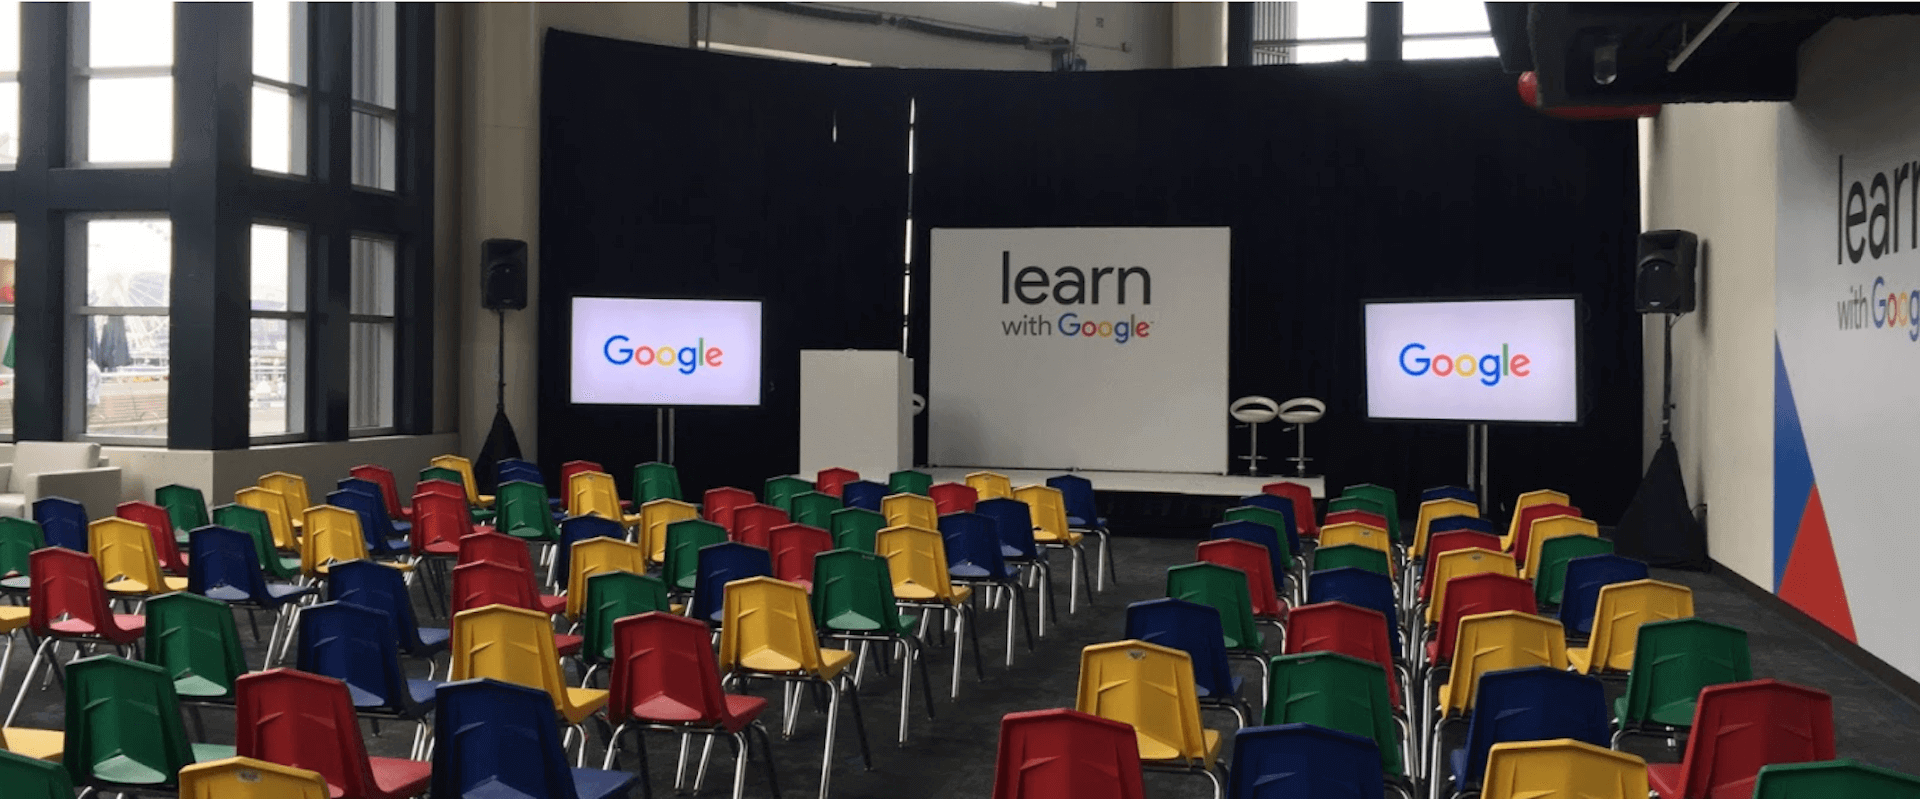 smx-advanced-learn-with-google-classroom-1920